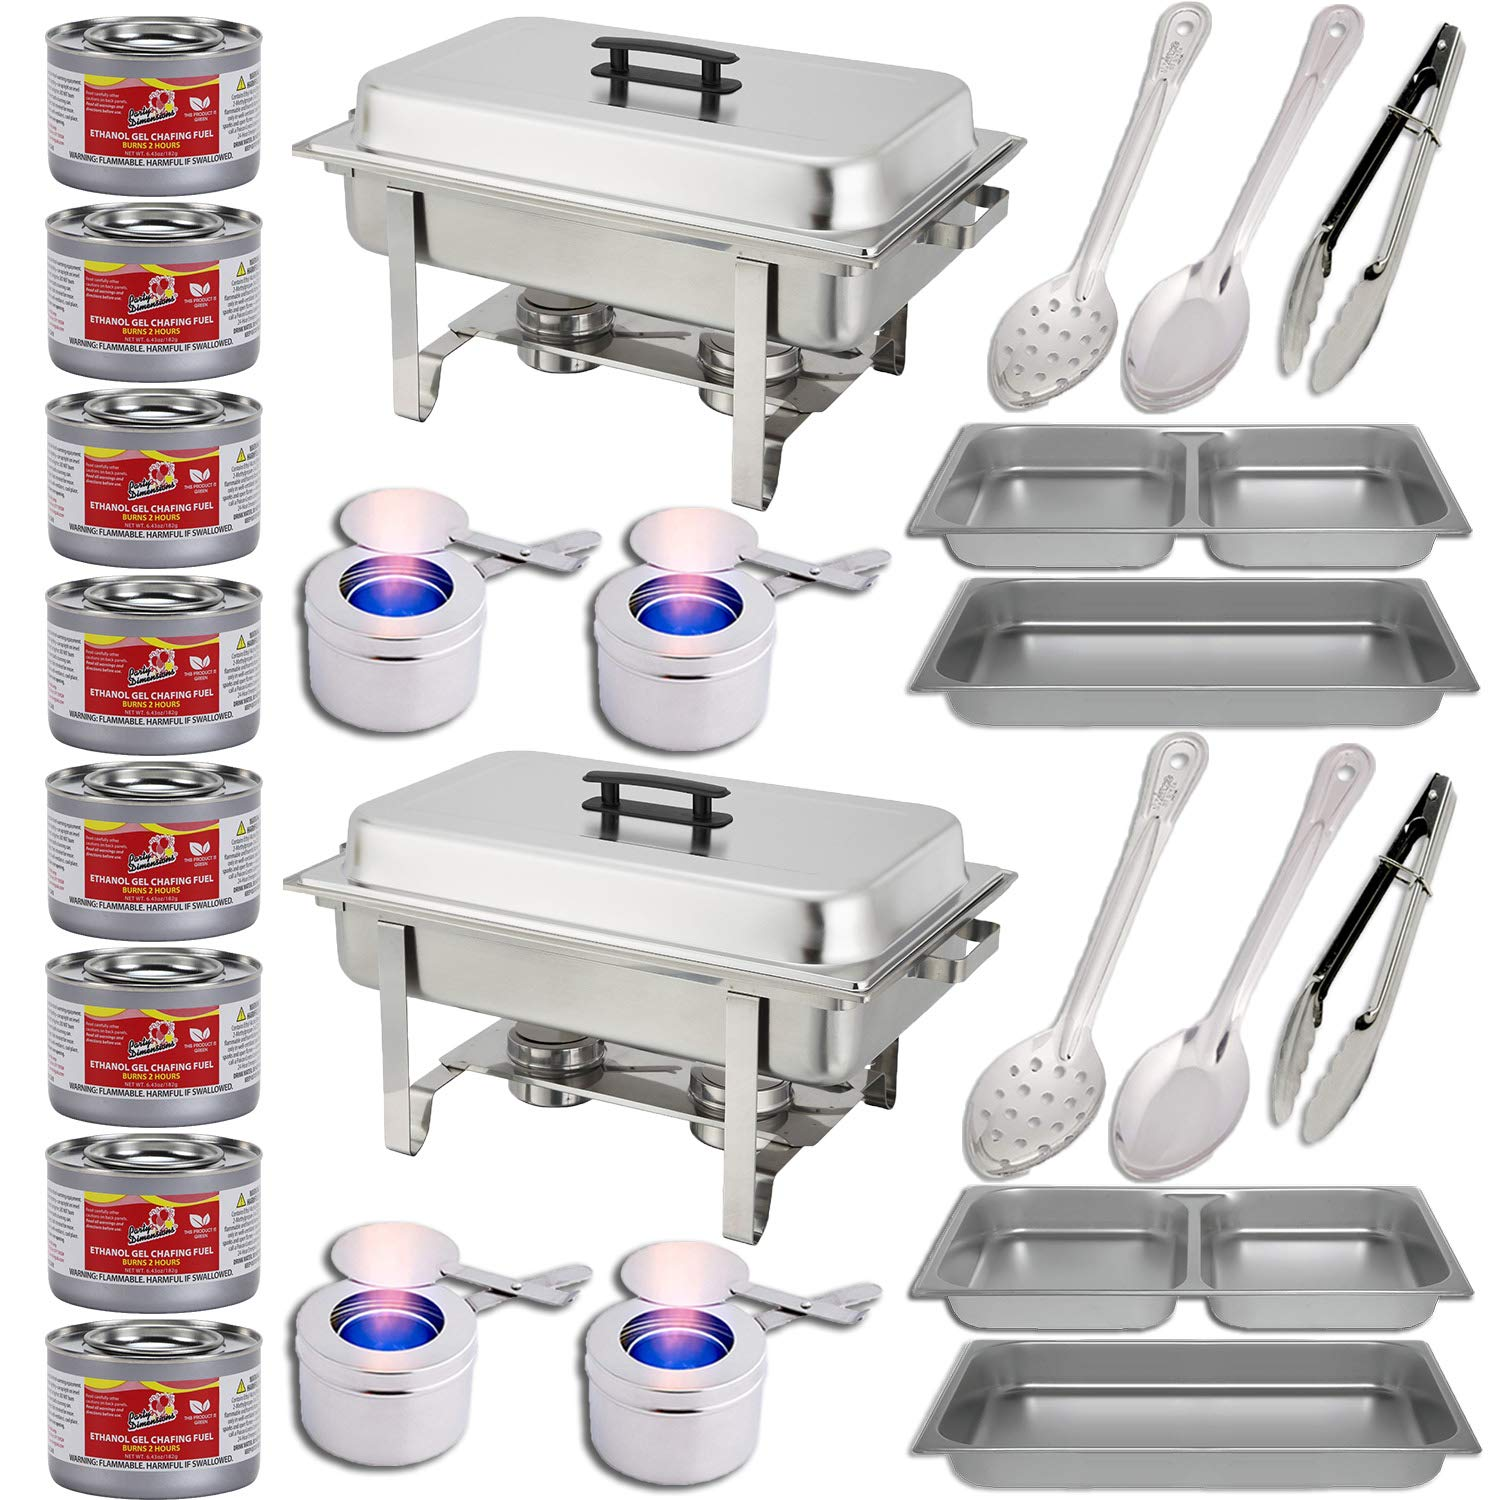 Chafing Dish Buffet Set w/Fuel - Divided pan (4qt x 2)+ Full Pan (8 qt) Water Pan + Frame + Fuel Holders + 8 Fuel Cans + Two 15'' spoons + Two 11'' Spoons + Two 9'' tongs - Two Full Warmer kits